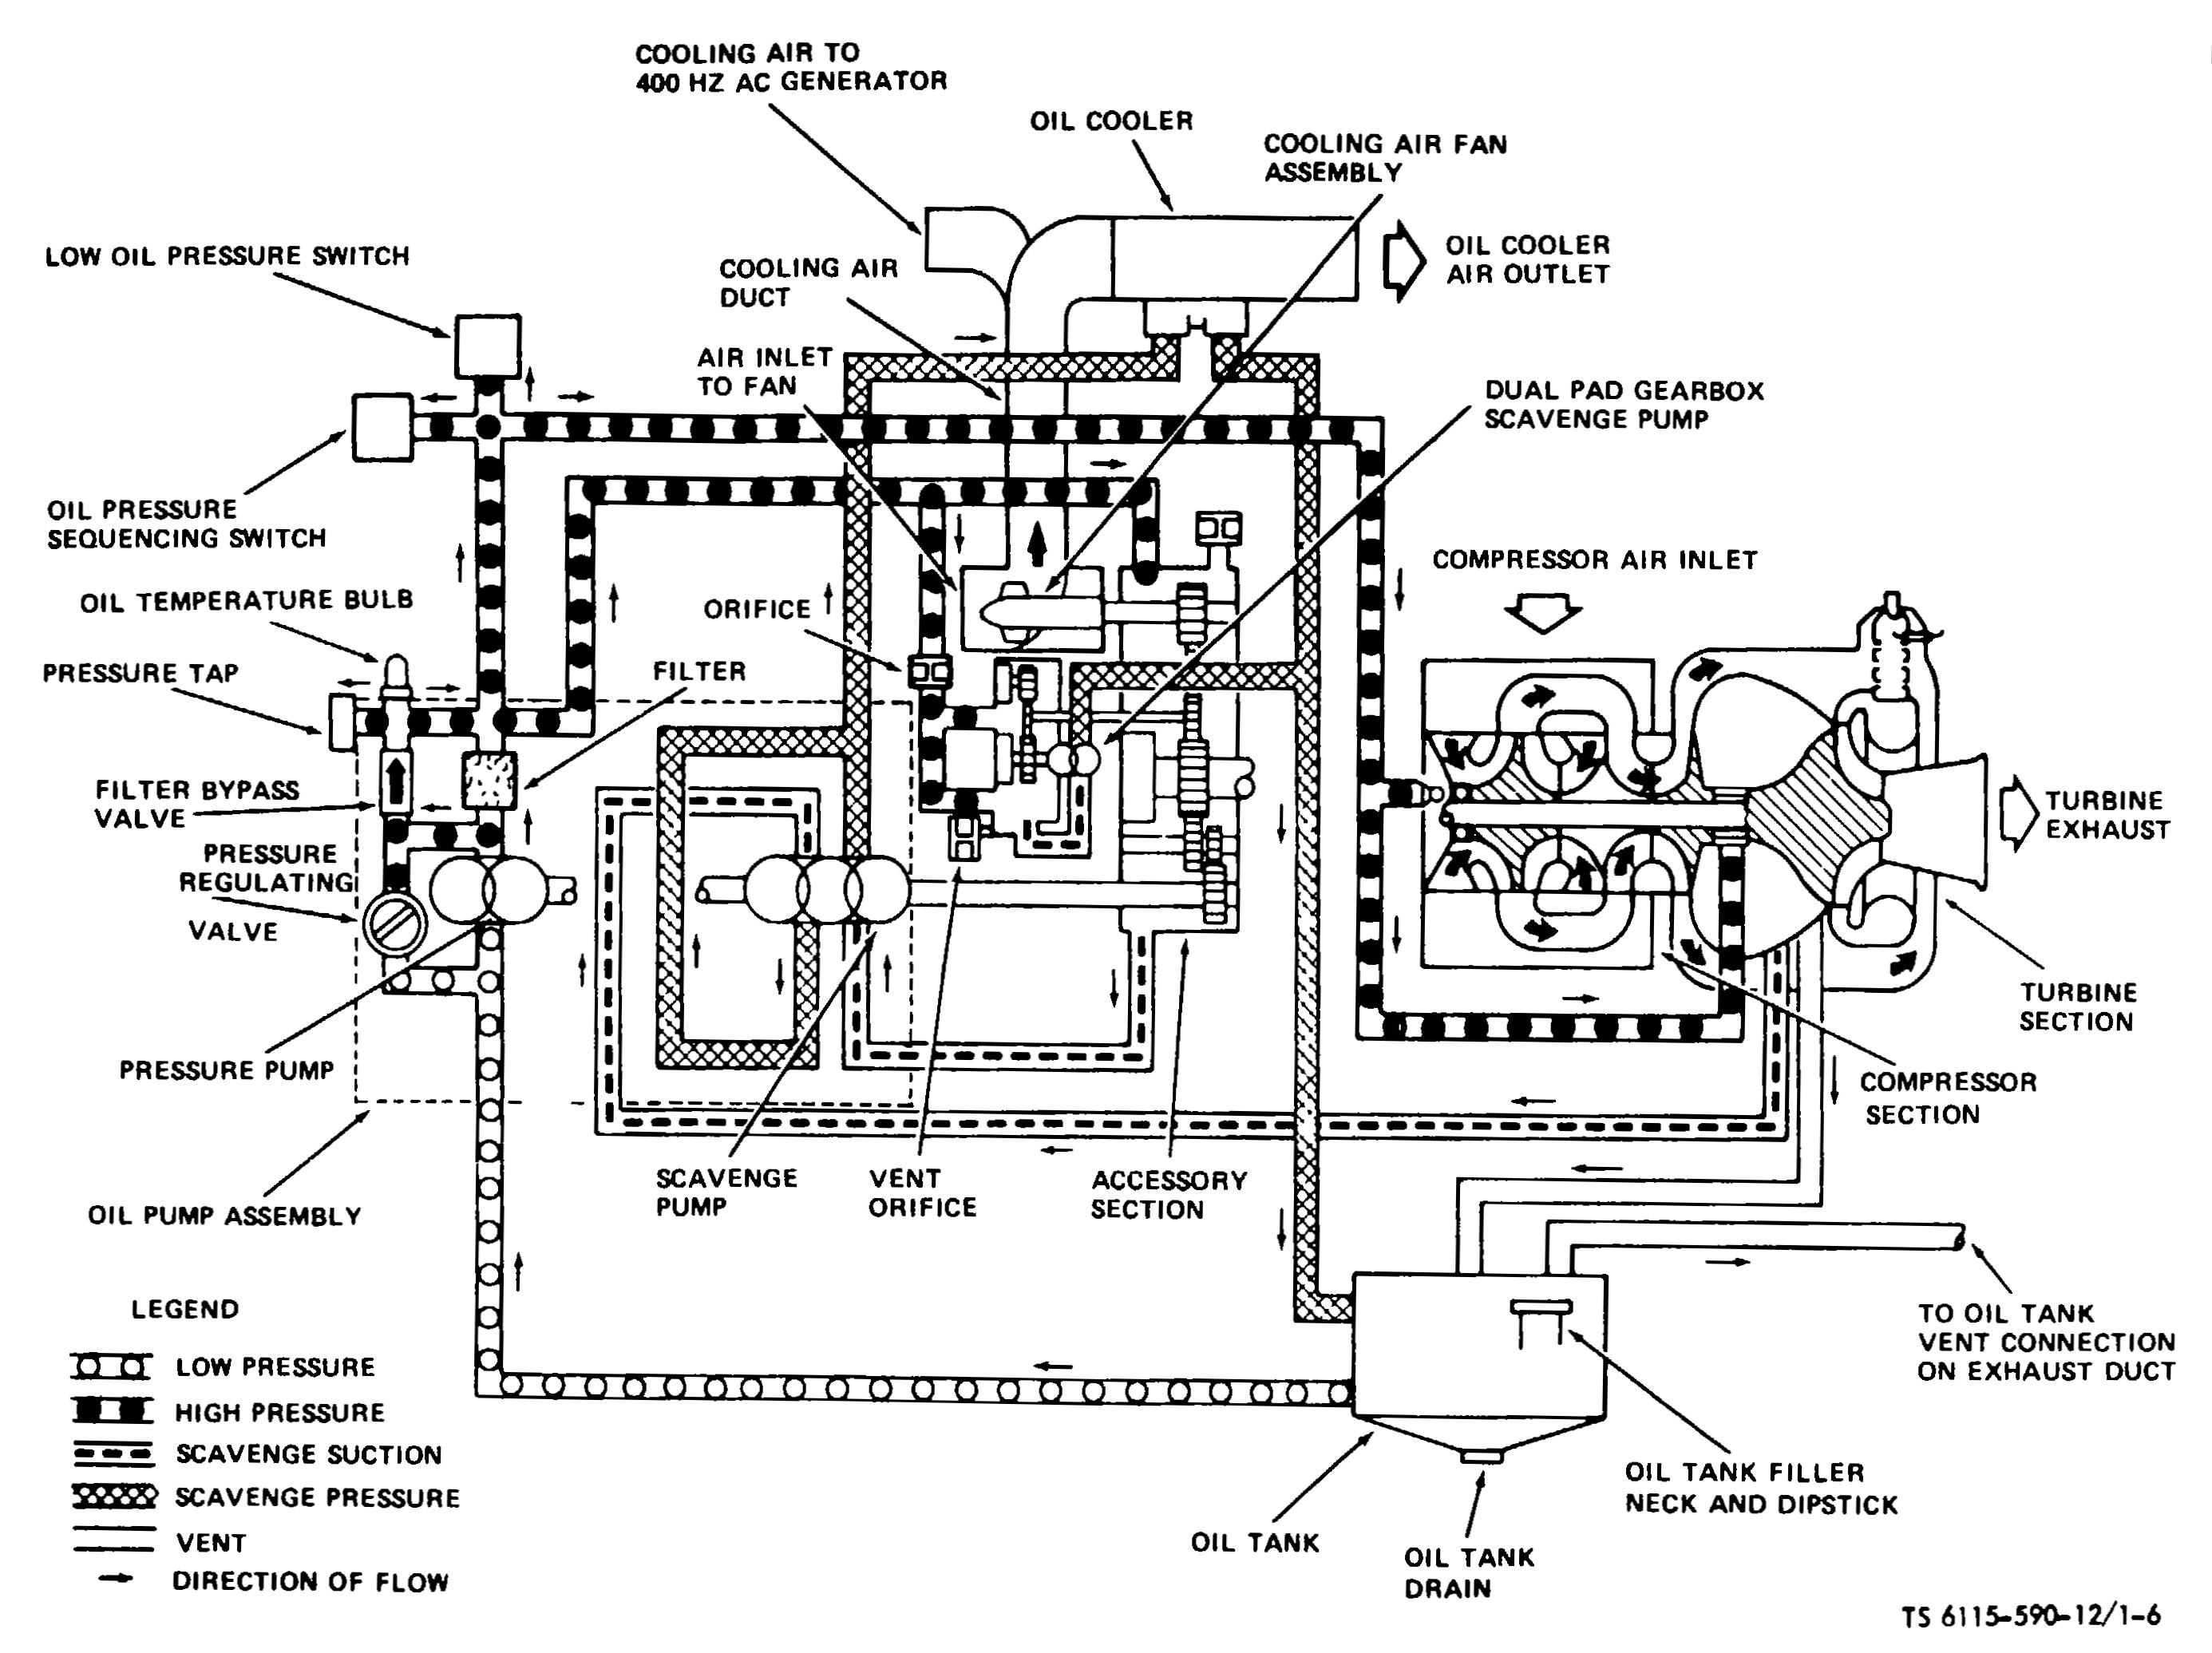 lube oil system diagram 4 way ball valve gtcp85